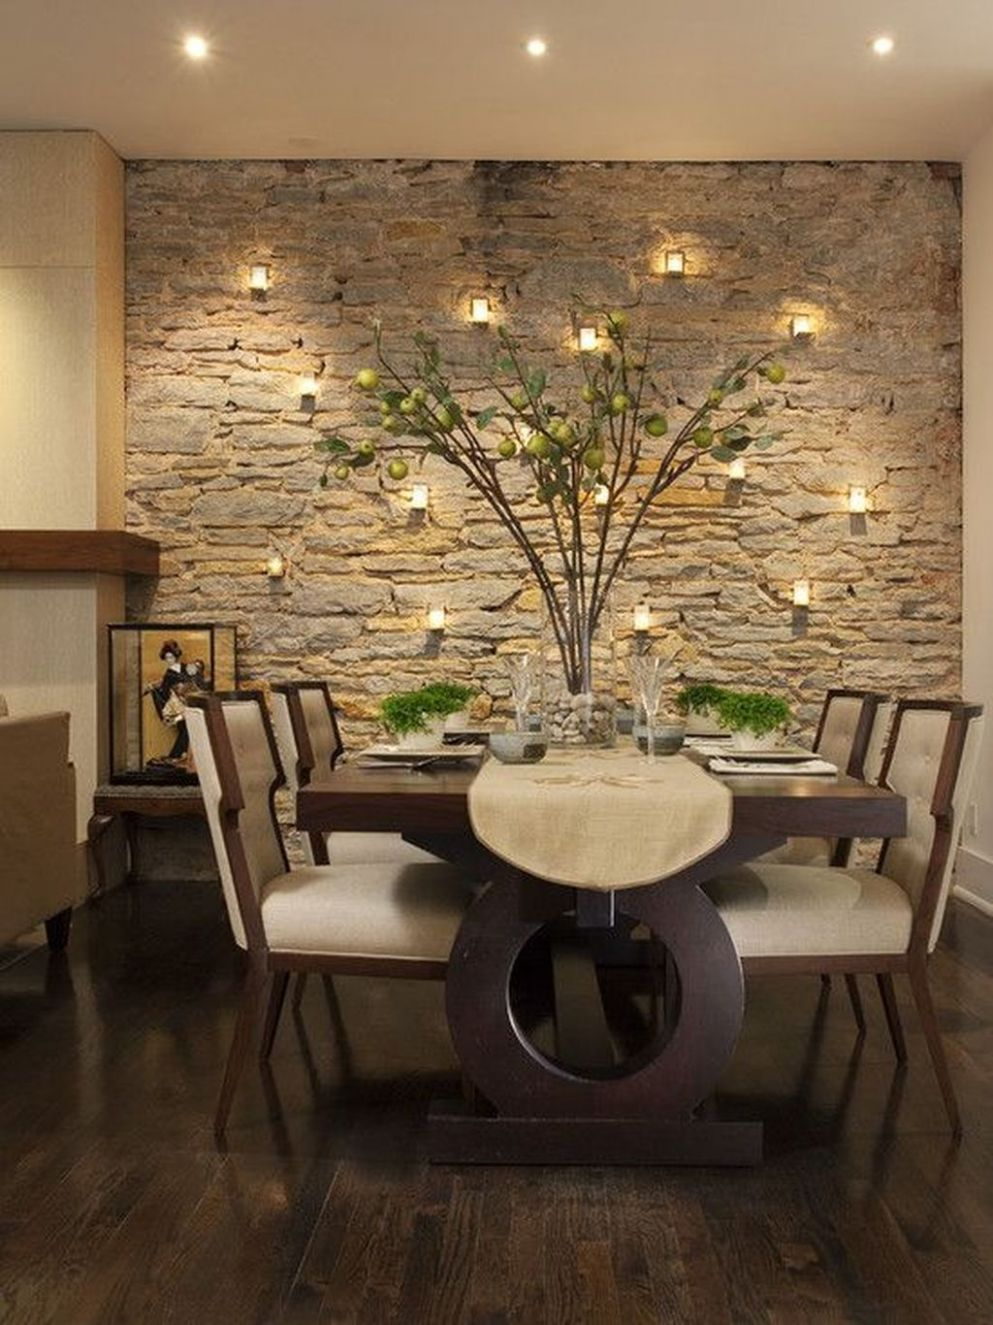 8 Best Dining Room Tiles Ideas | Dining room accents, Dining room ...